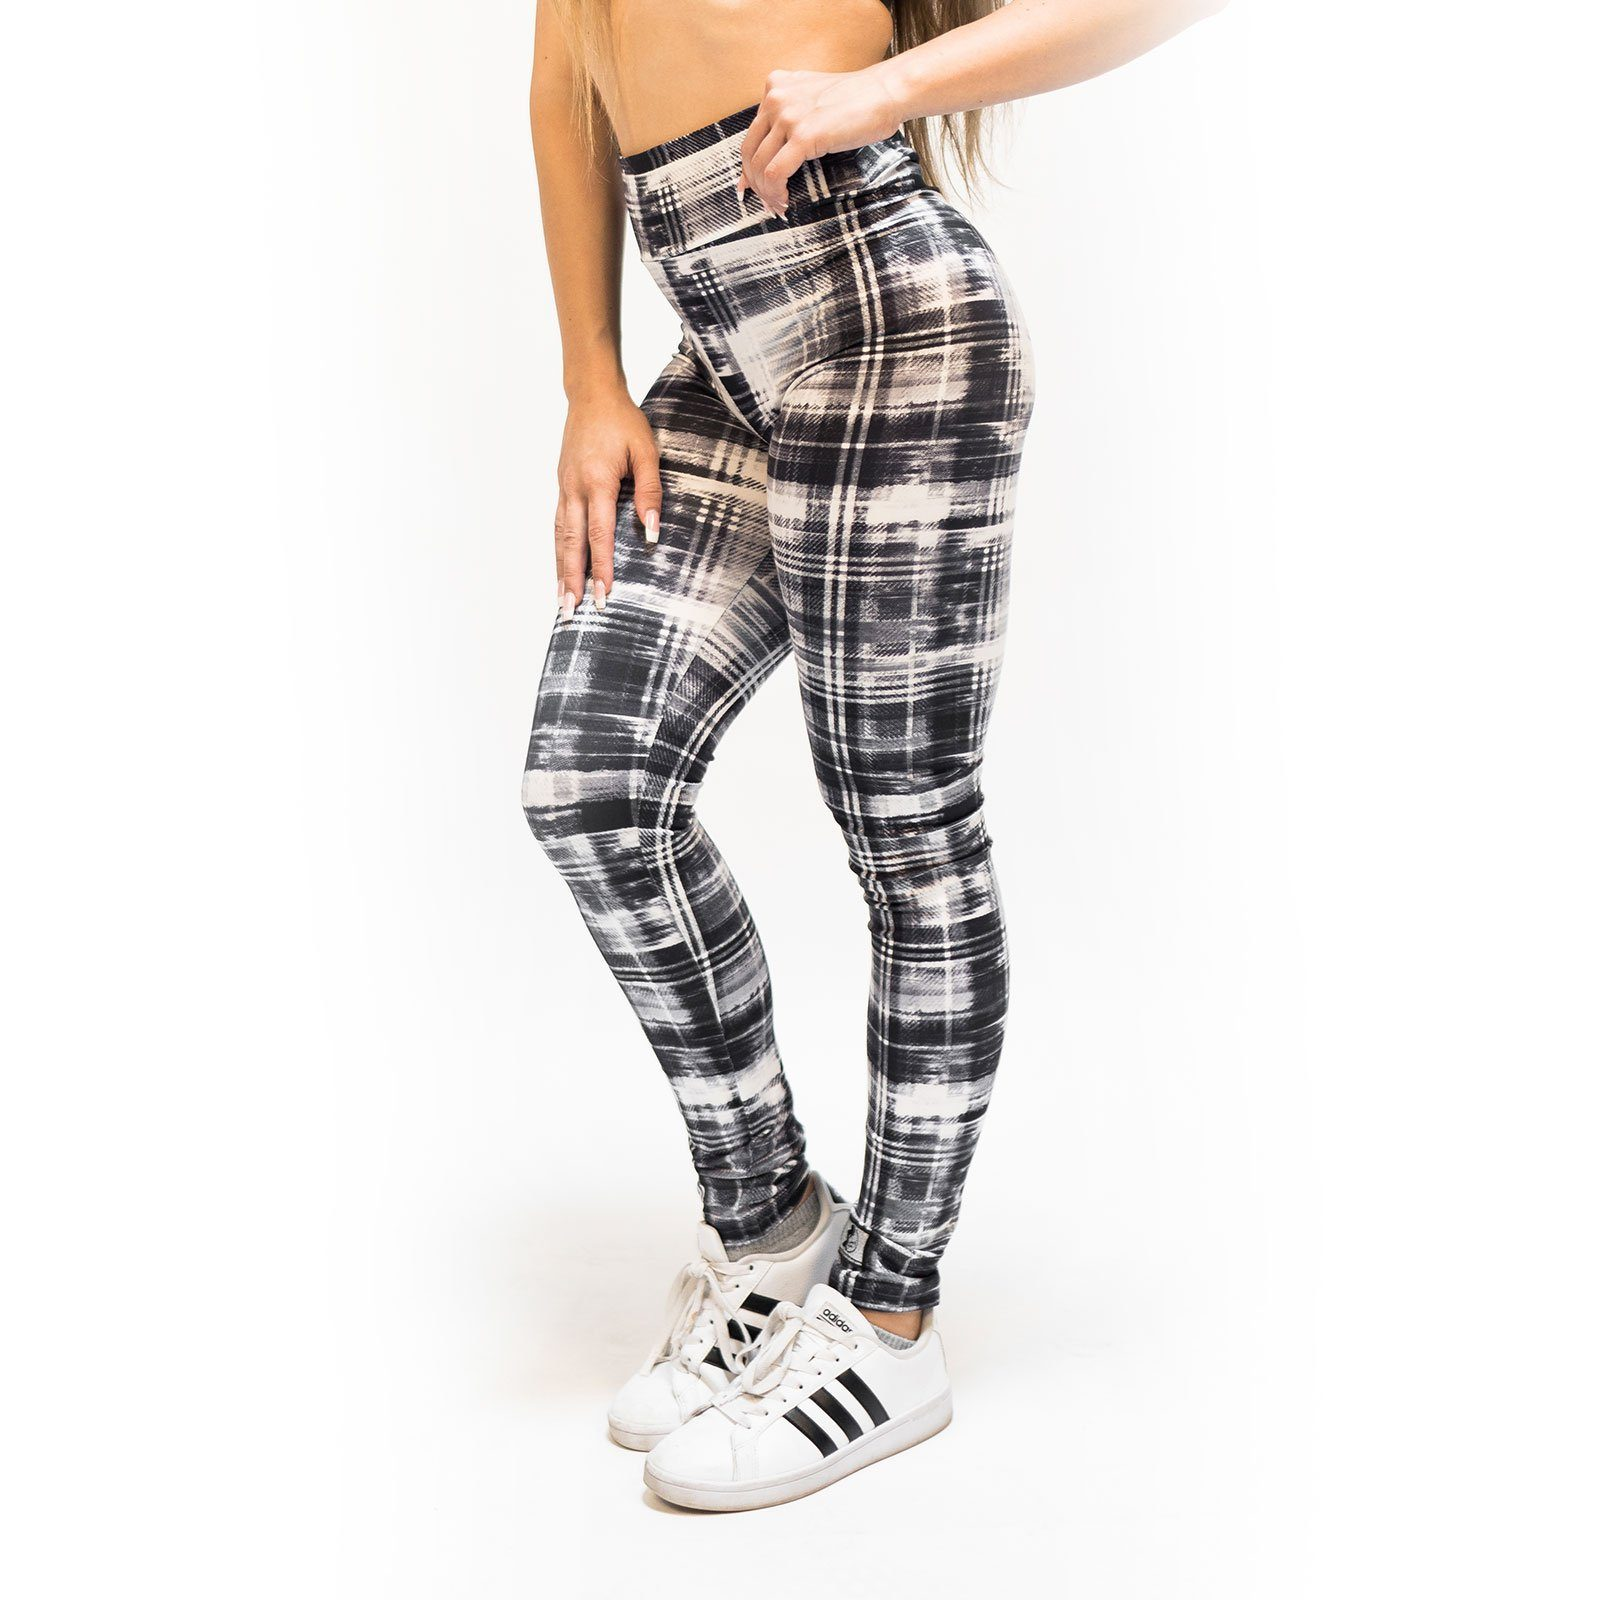 High Waist Distressed Plaid Leggings